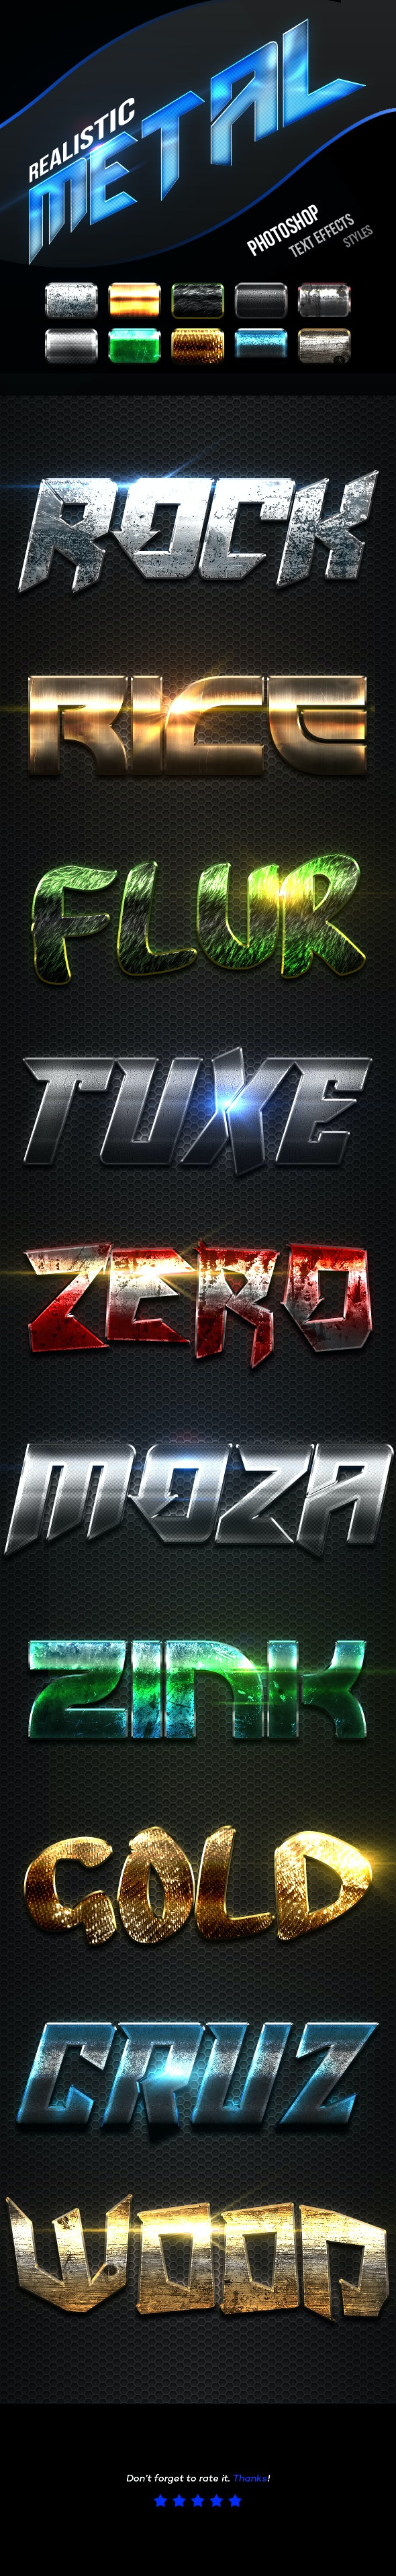 Realistic Metal Text Effects Vol.1 - Text Effects Actions